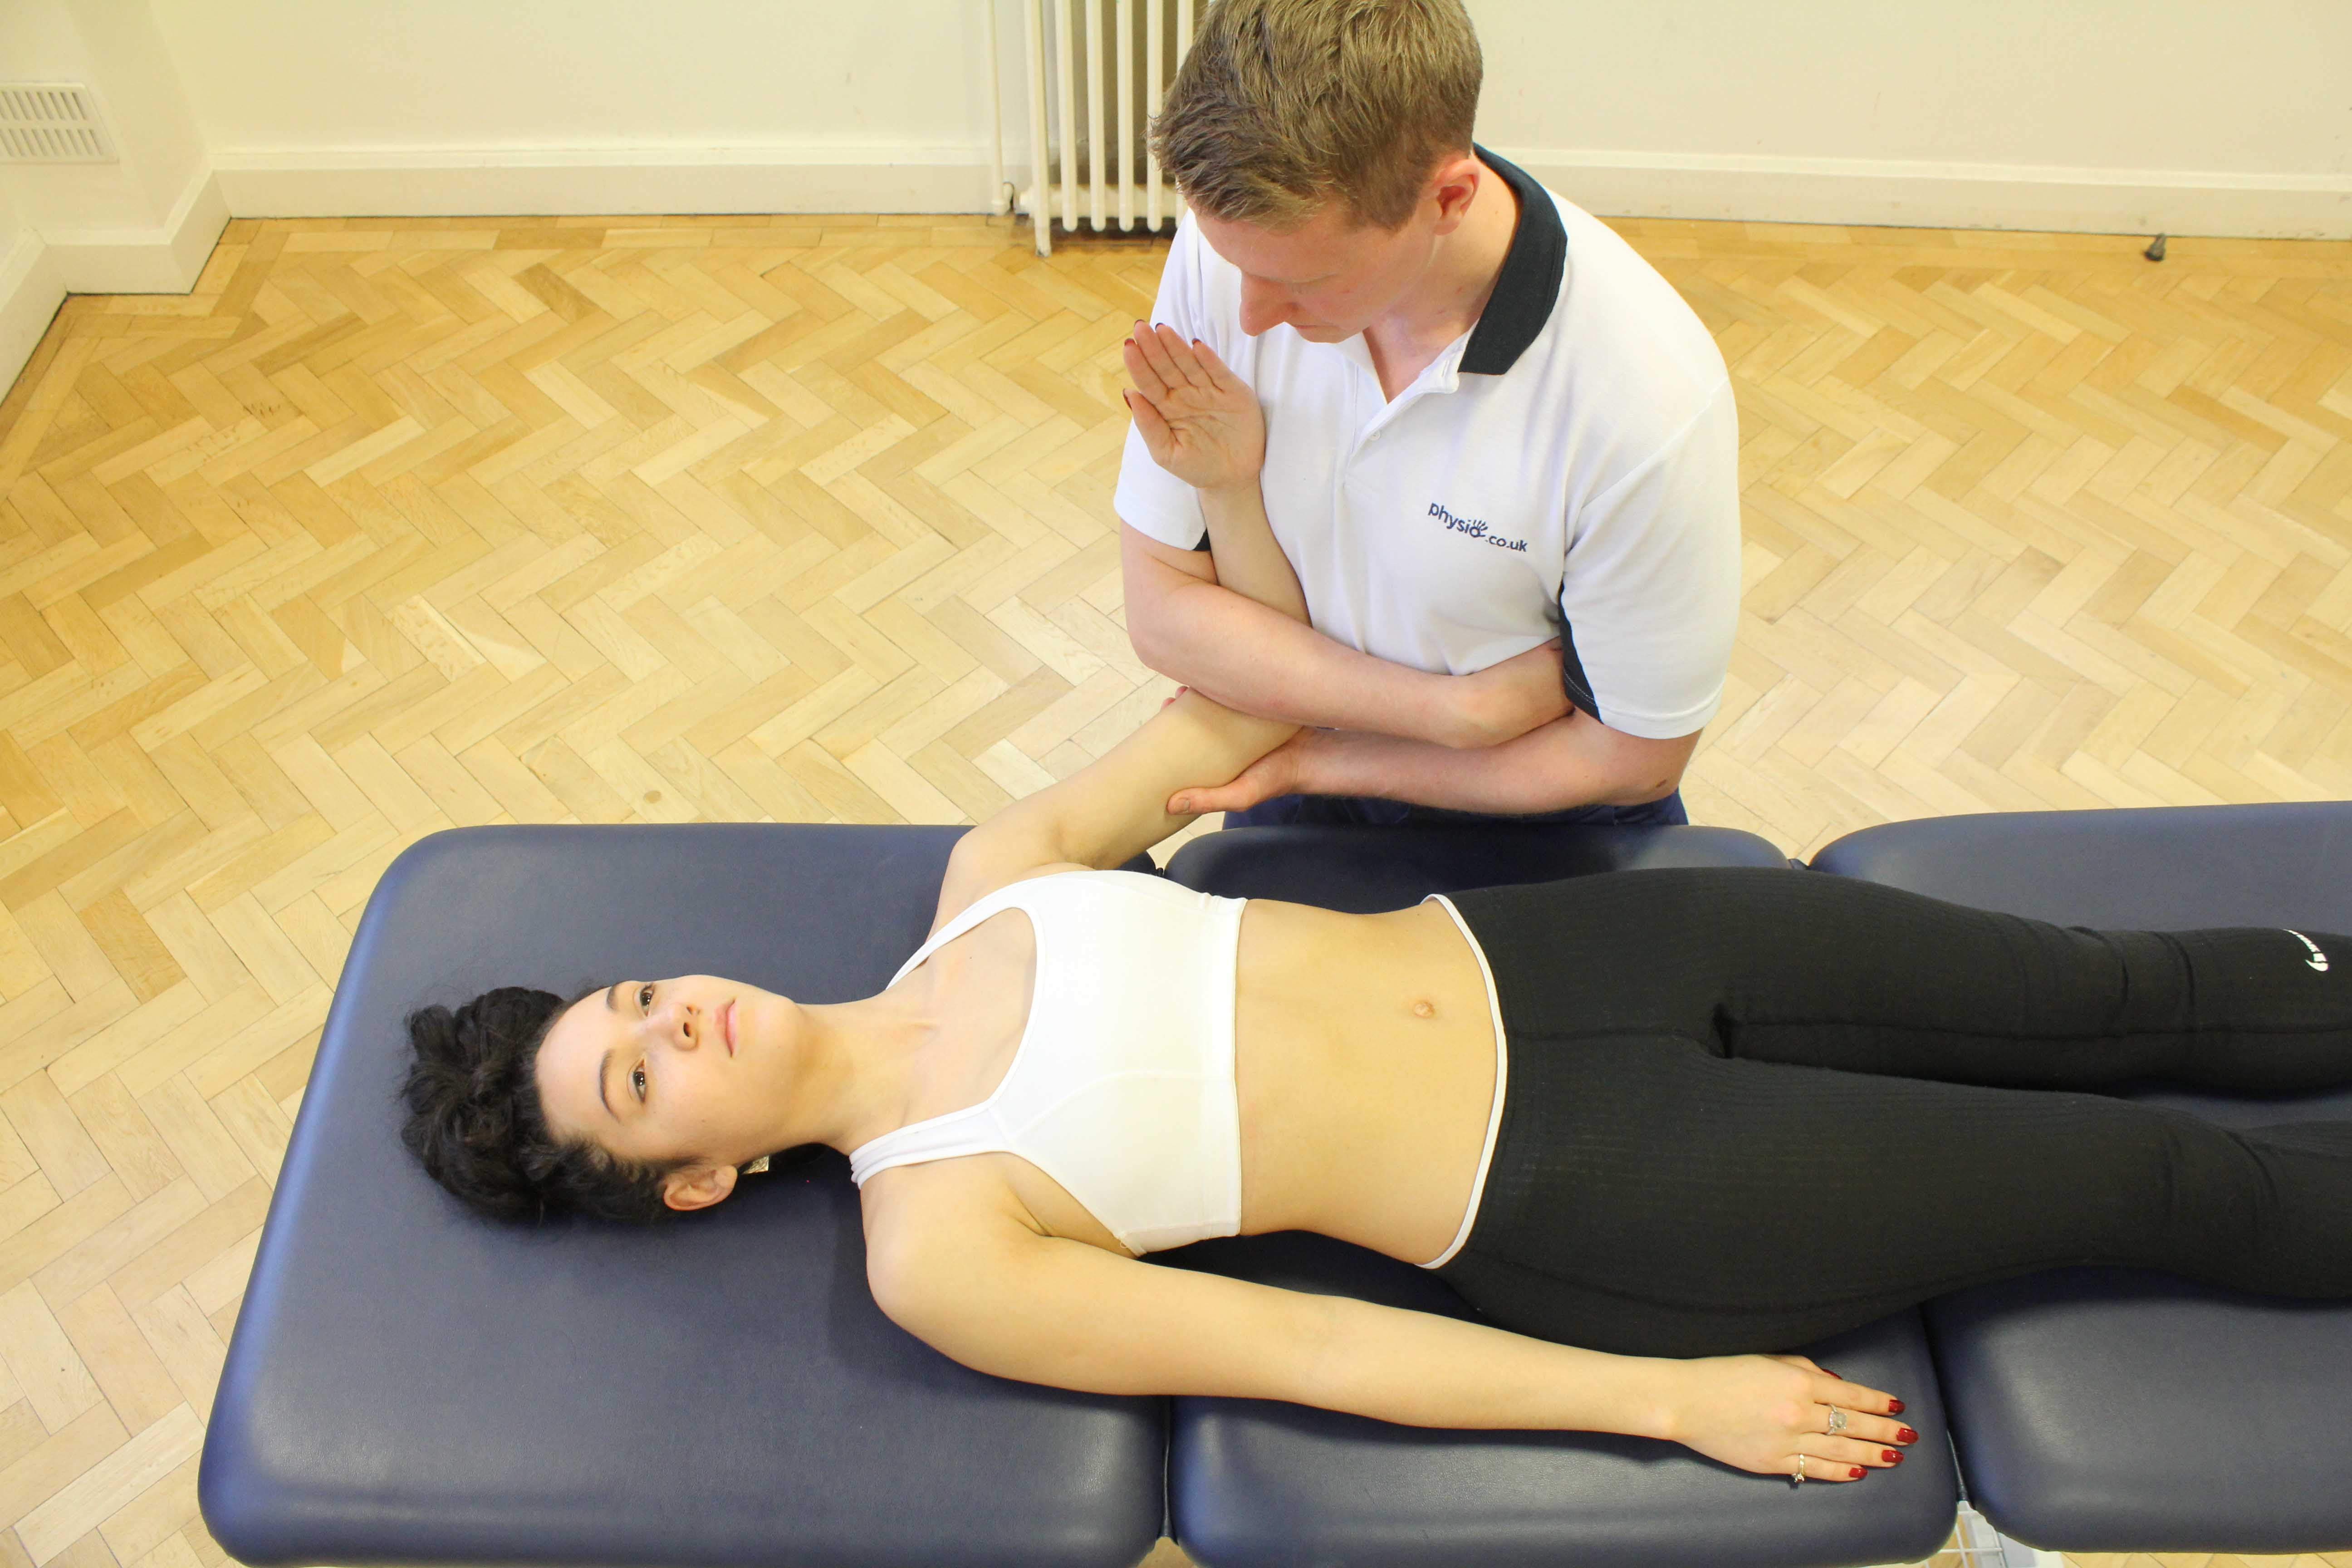 Joint distraction to relieve pain applied by an experienced physiotherapist